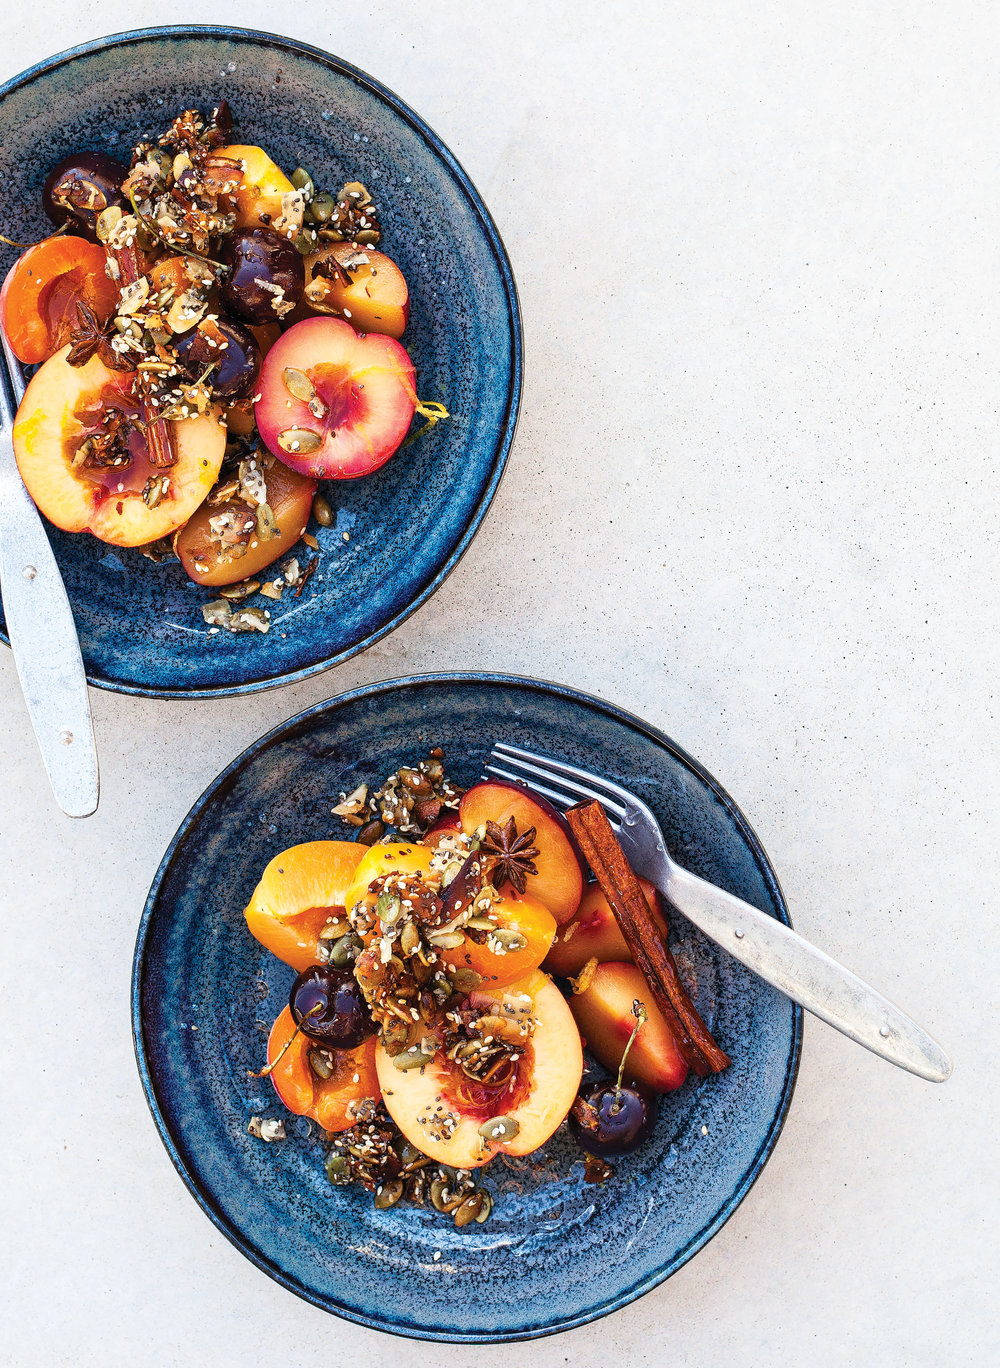 Annabel_Langbein_TOGETHER_SweetThings_FruitSaladWithCoconutClusters_PRINT.jpg